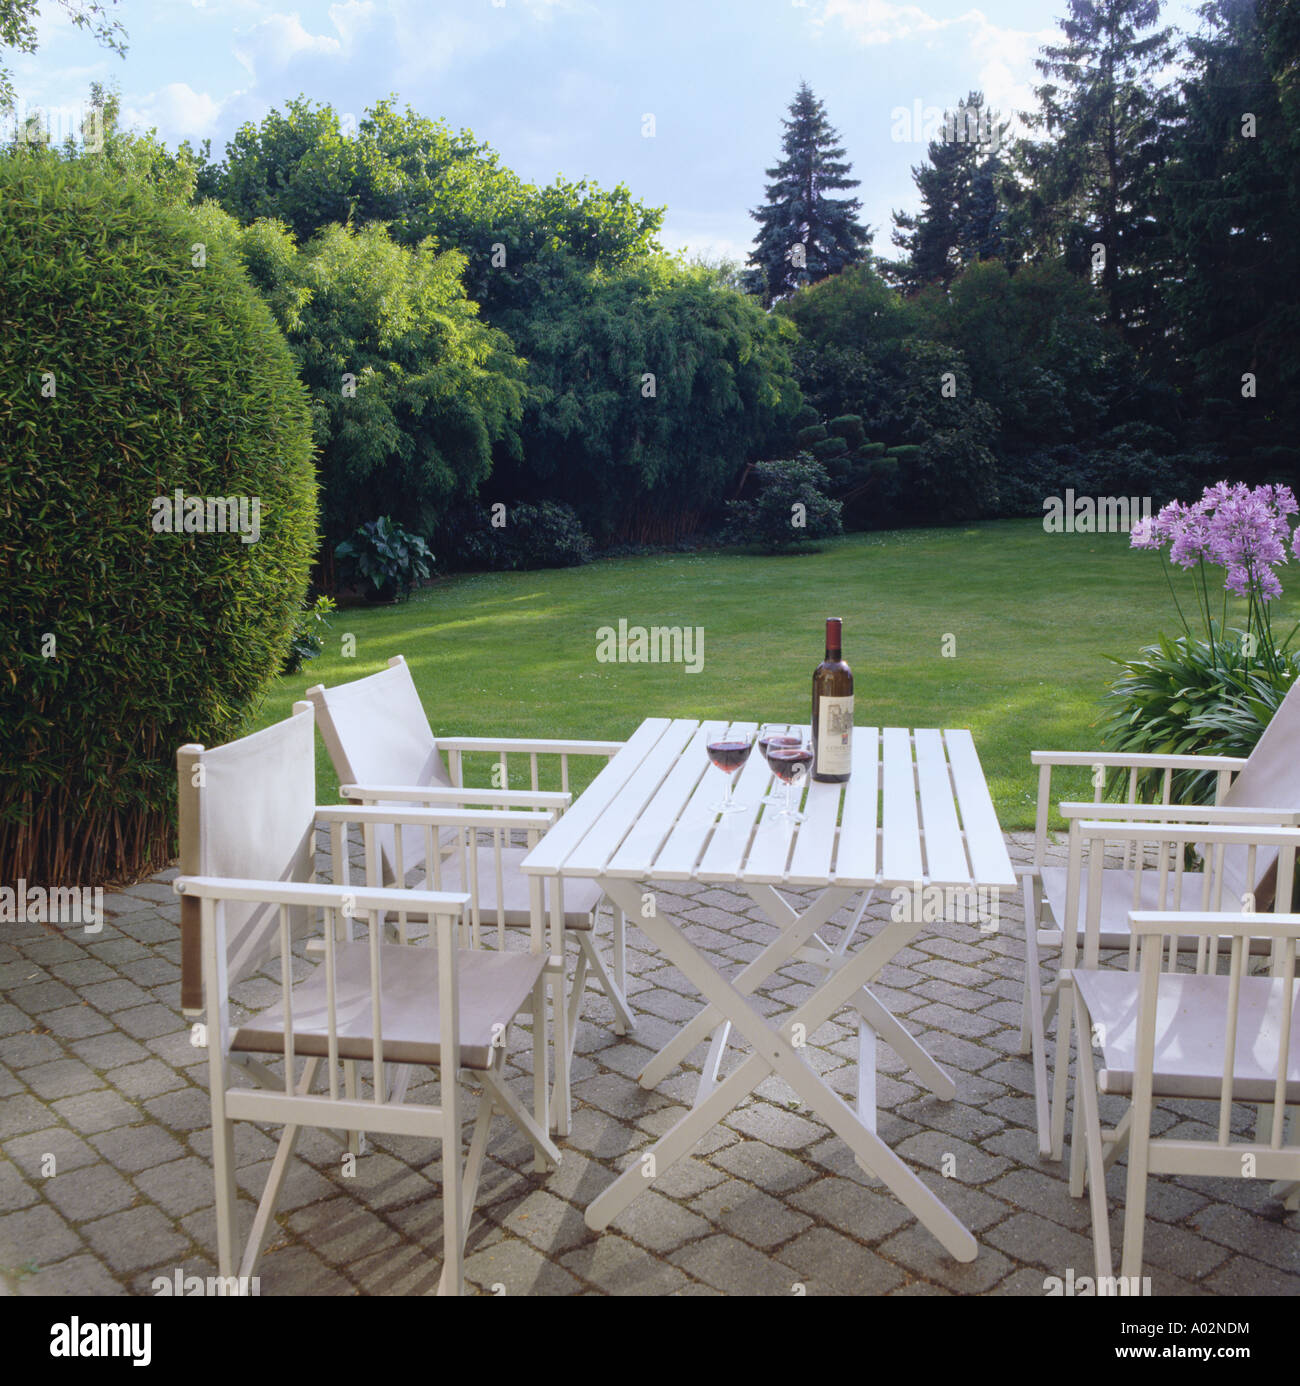 White garden furniture on paved patio overlooking lawn in large ...